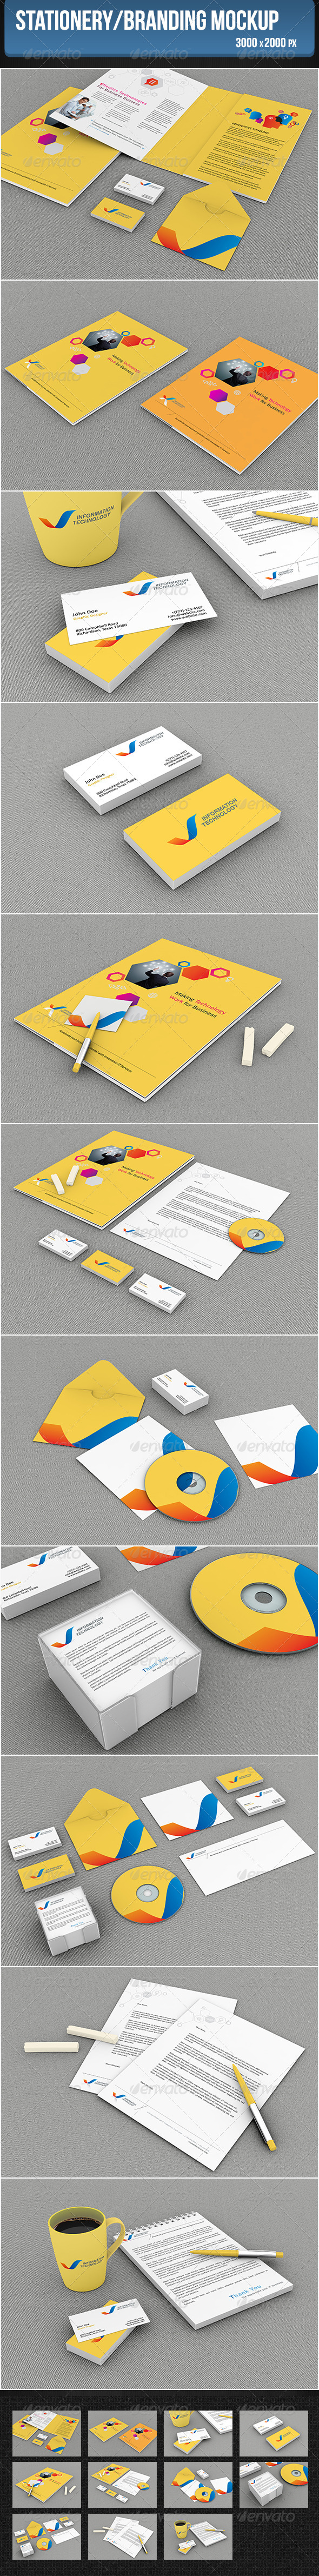 GraphicRiver Stationery Branding Mockup 5272681